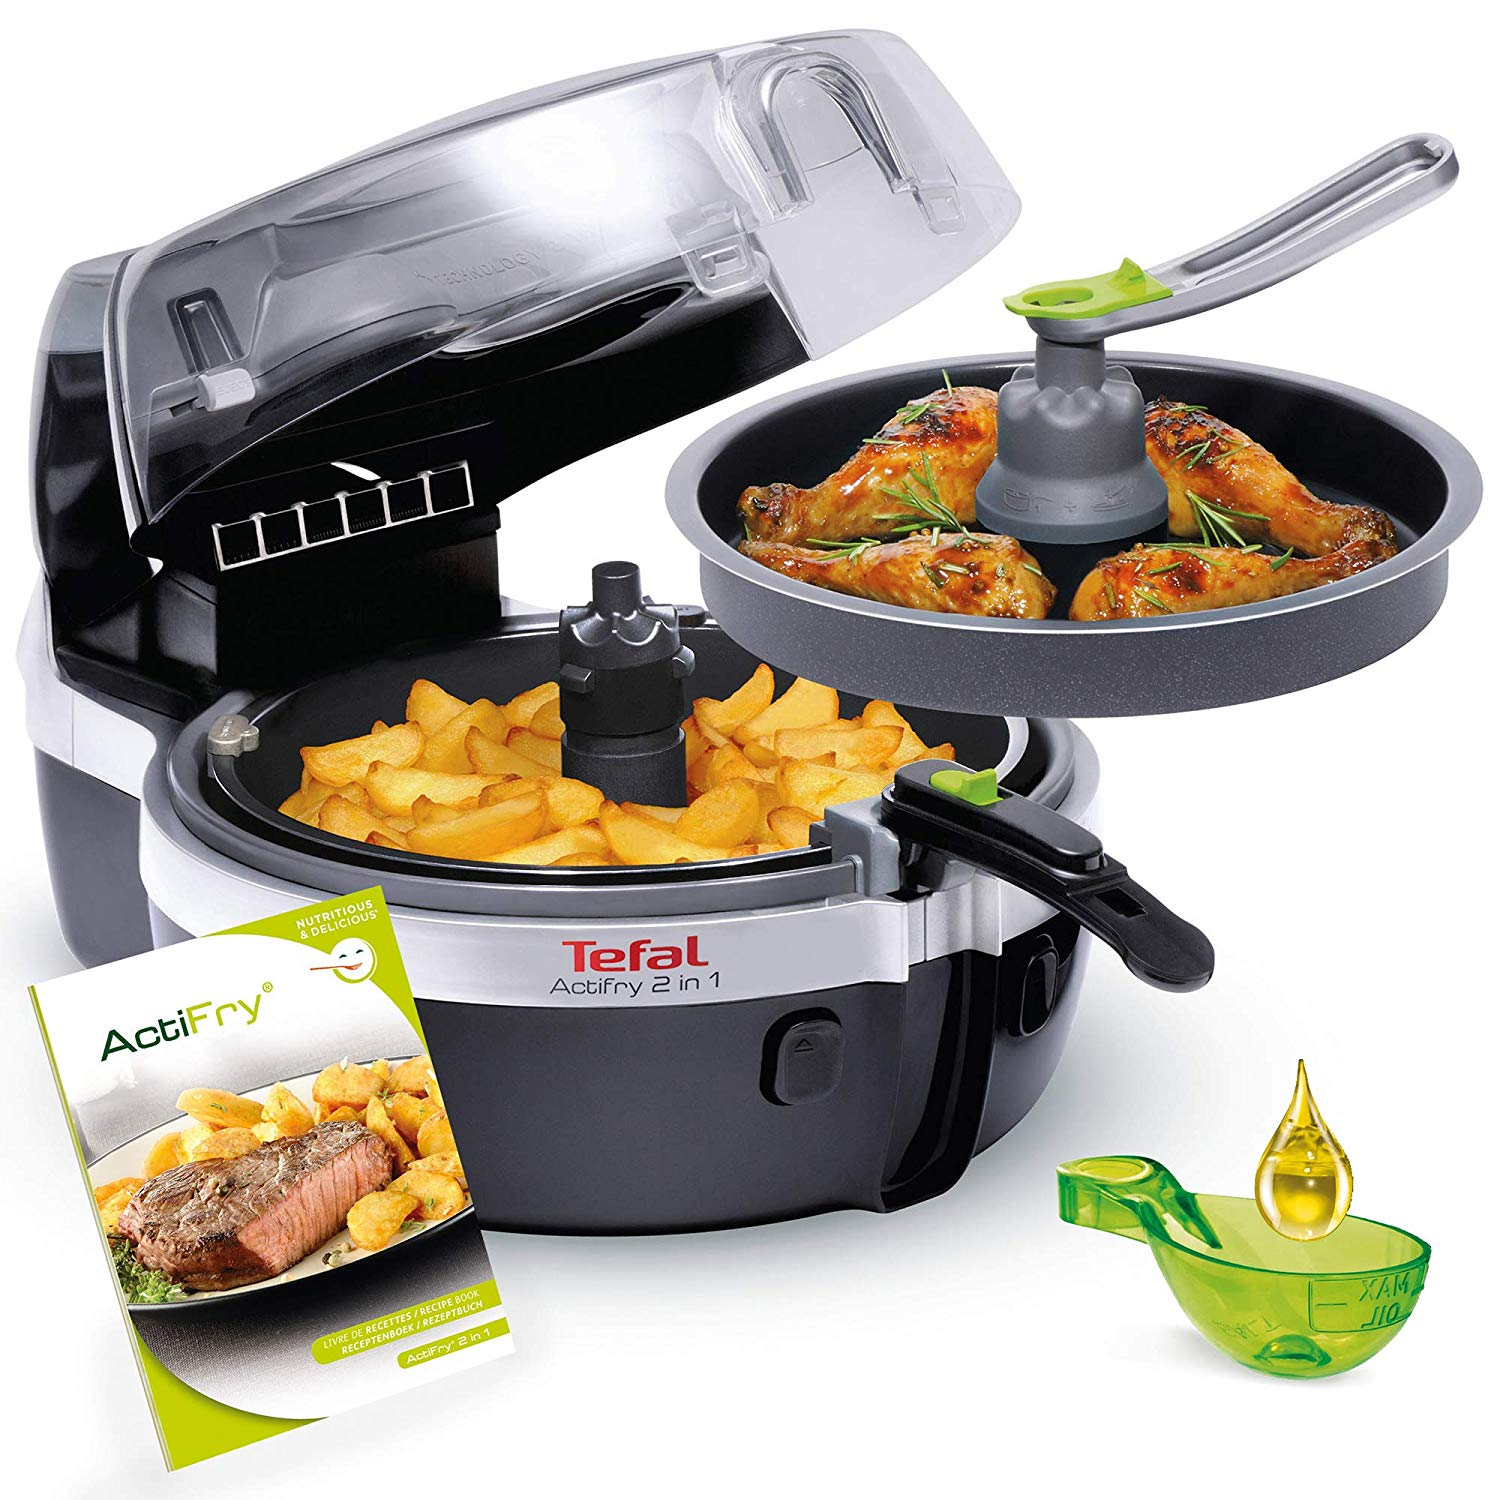 Tefal ActiFry 2 in 1 XXL